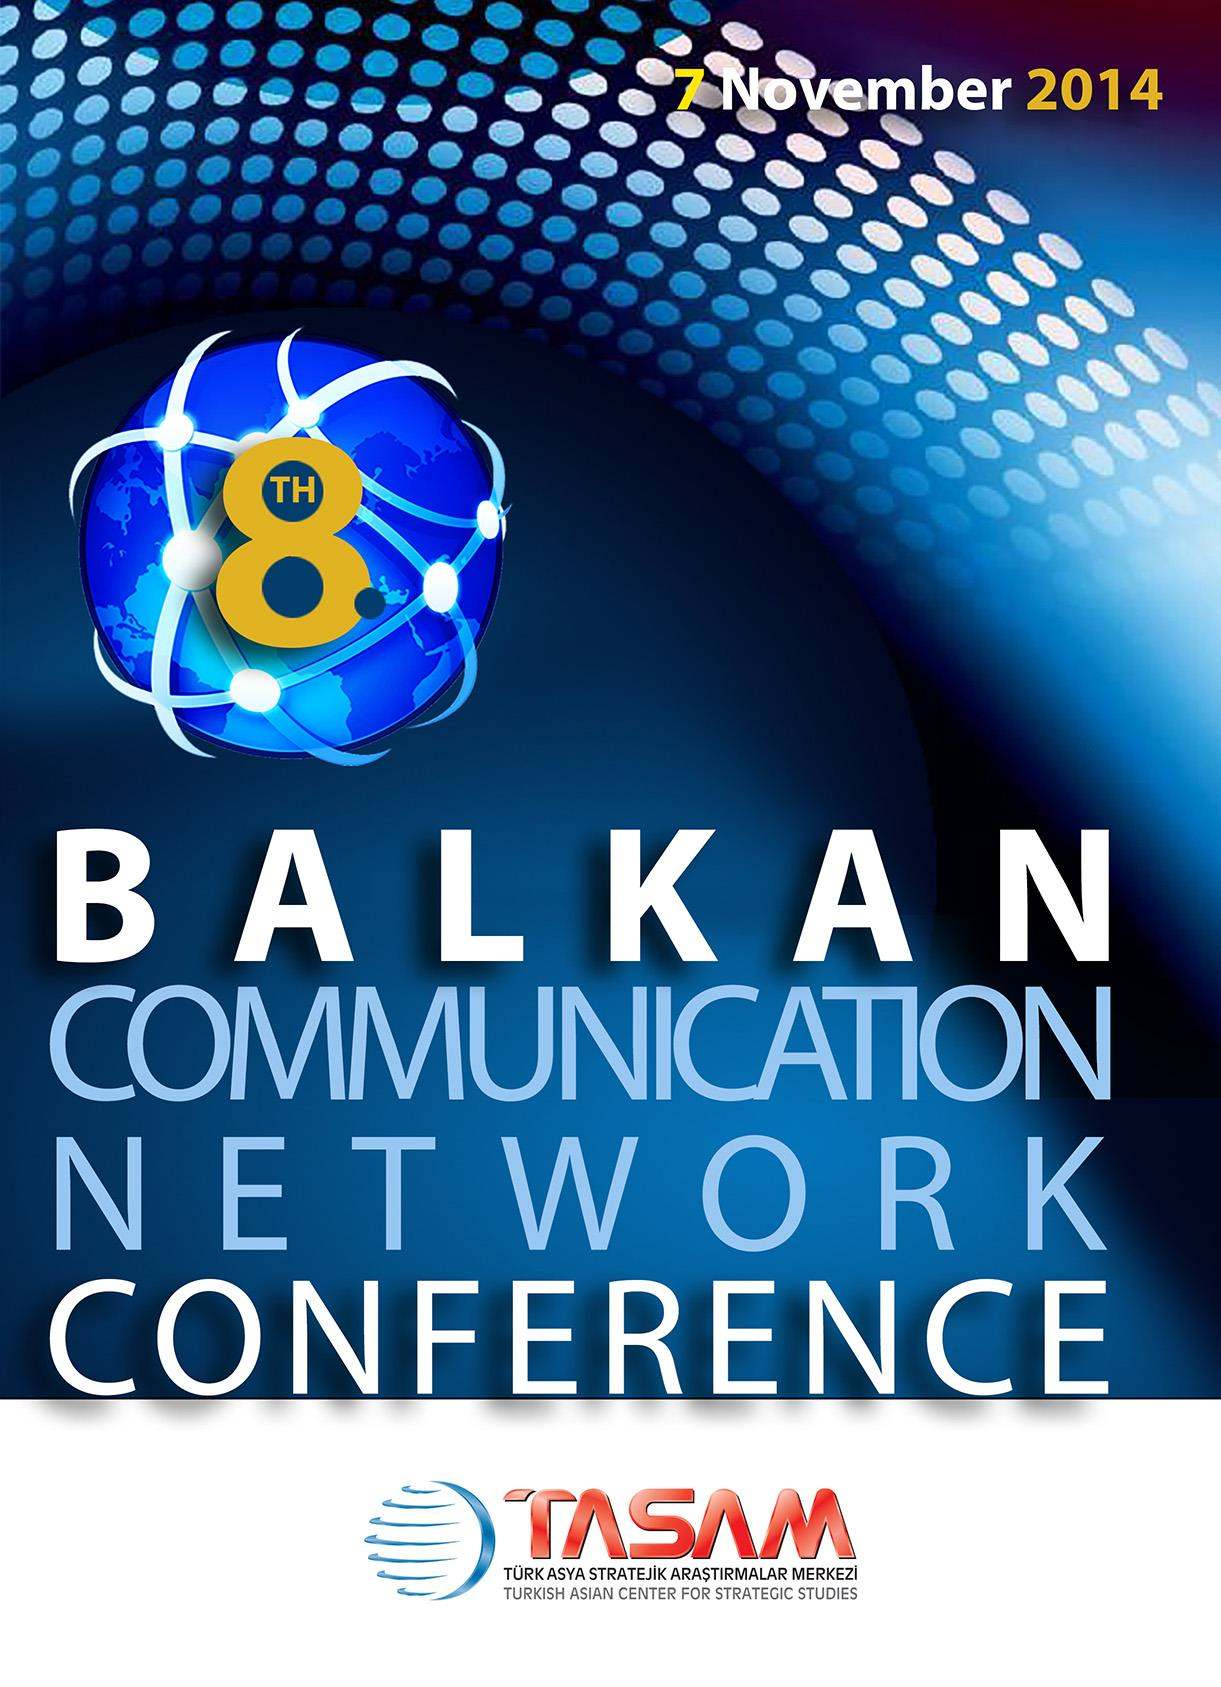 8th Balkan Communication Network Conference